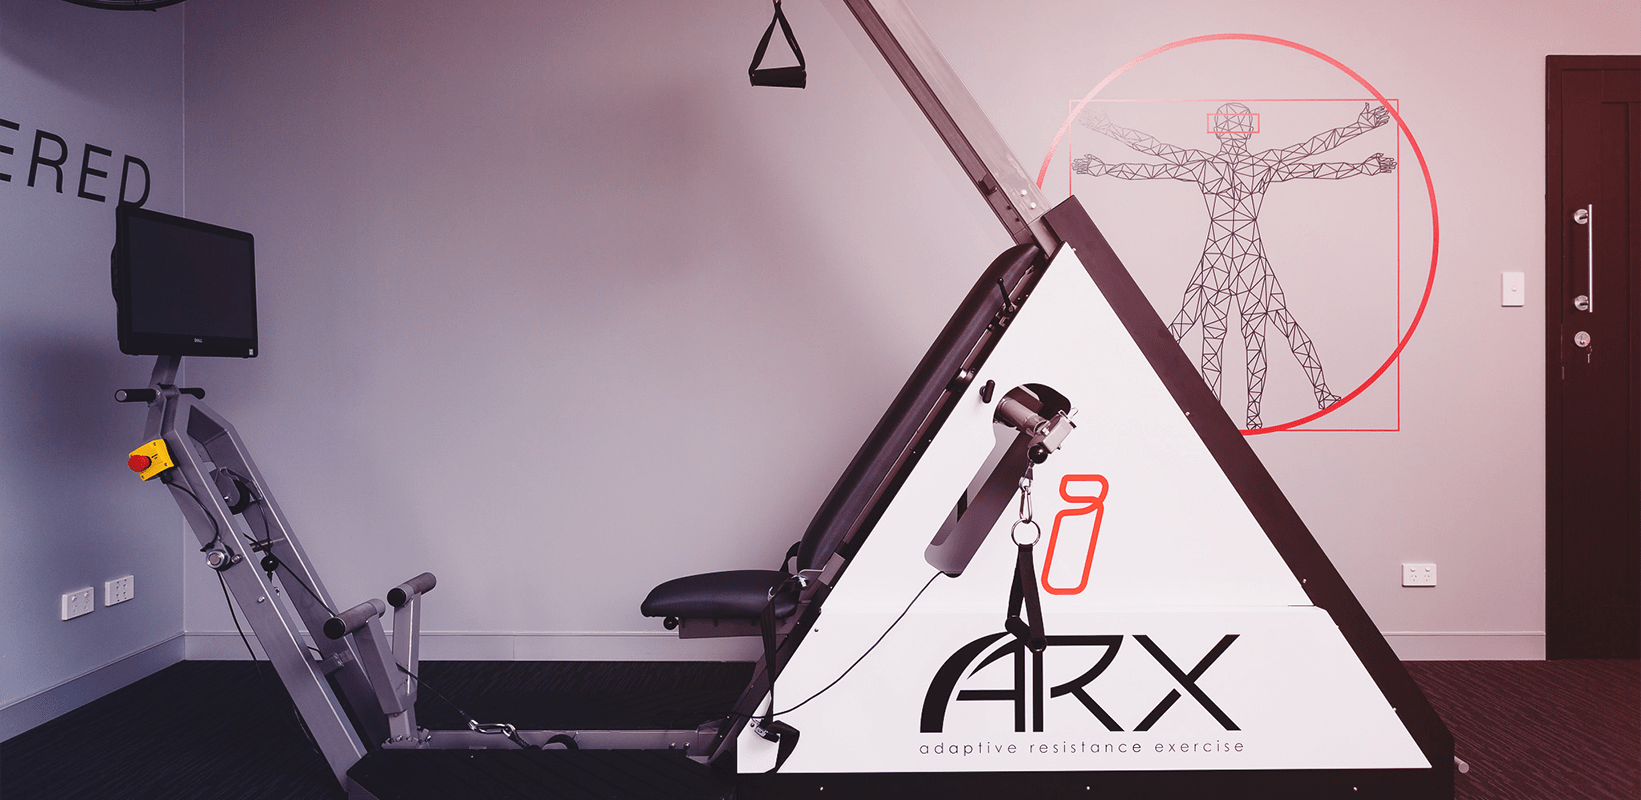 Intense Health Interlude Training System ARX Fit Australia Training Chamber